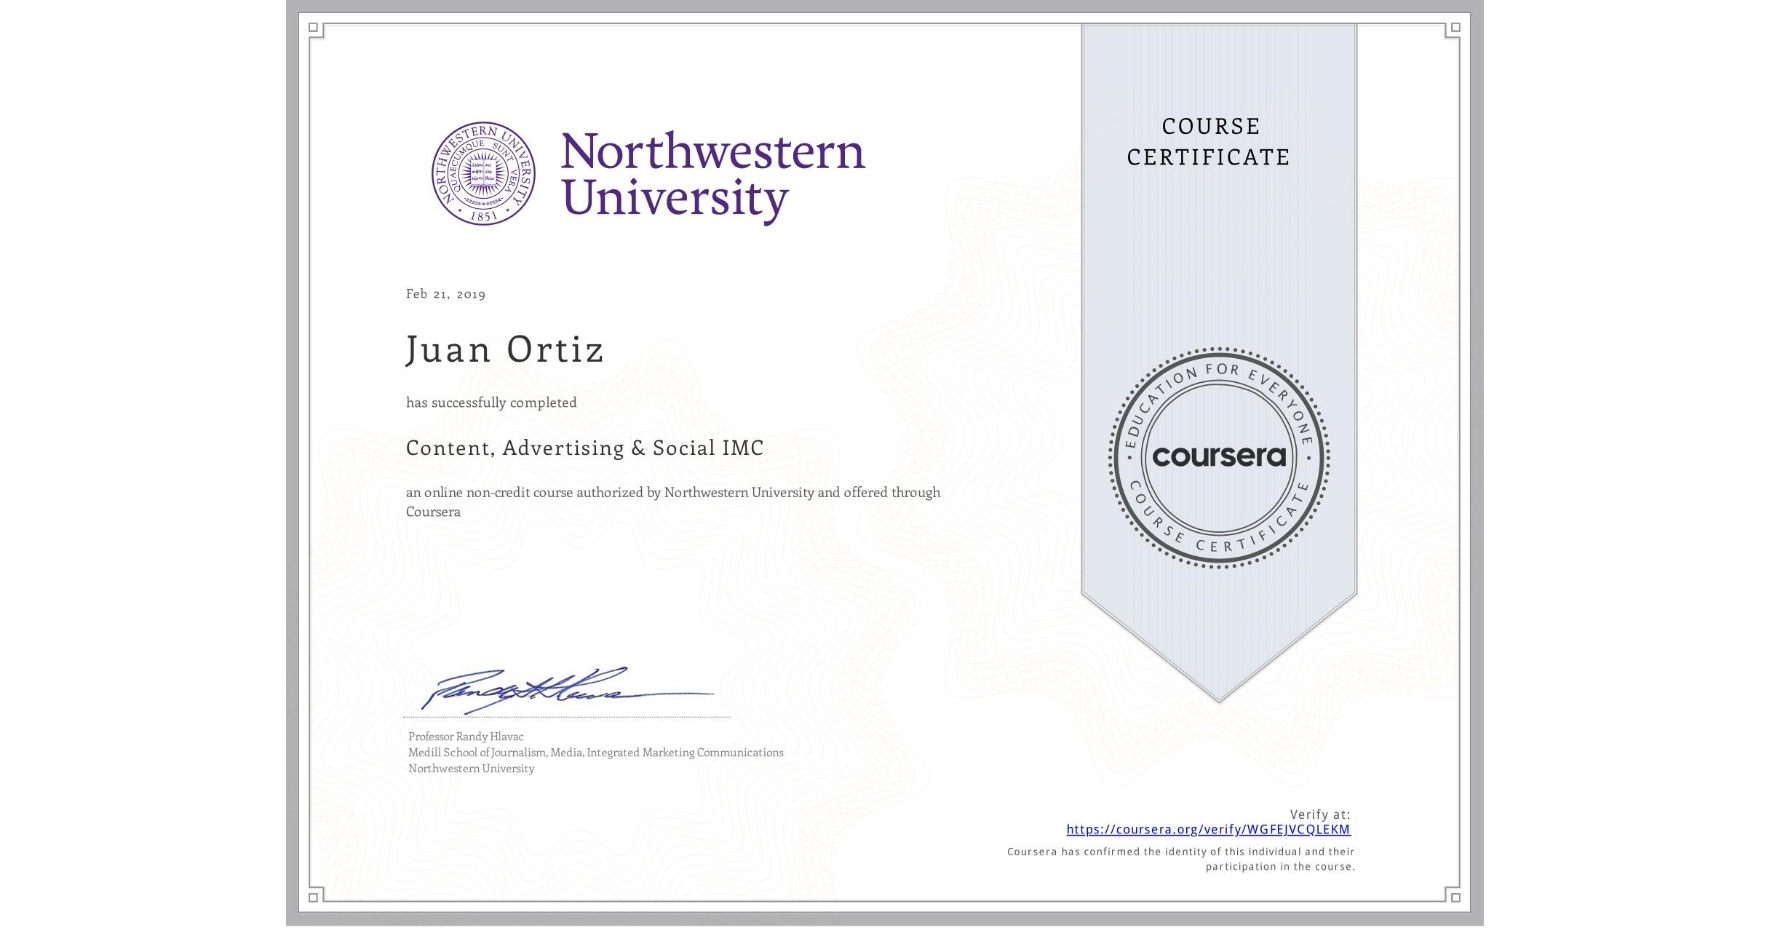 View certificate for Juan Ortiz, Content, Advertising & Social IMC, an online non-credit course authorized by Northwestern University and offered through Coursera